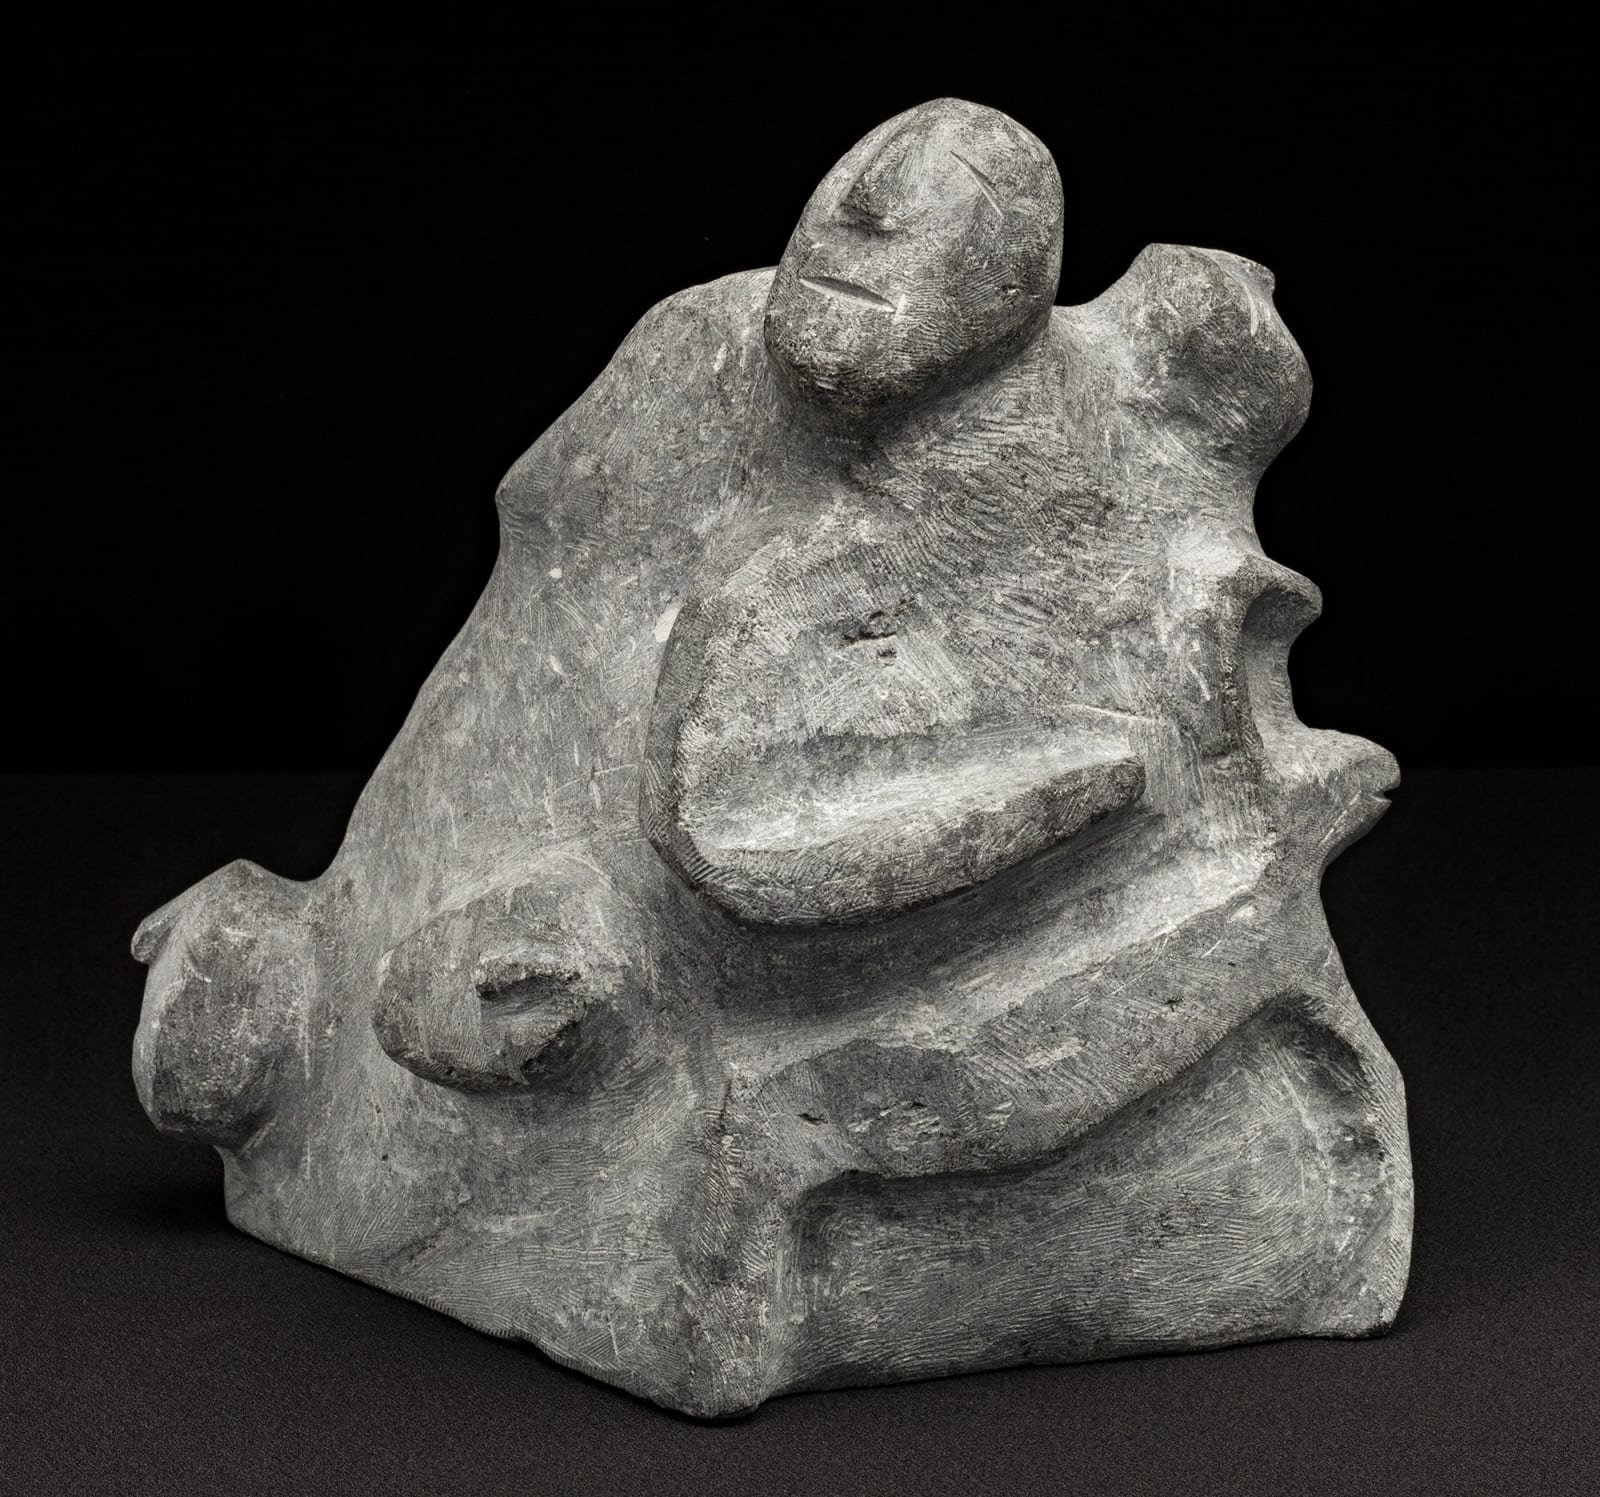 Lot 31 MARY AYAQ ANOWTALIK (1938-) ARVIAT (ESKIMO POINT) Composition with People and Caribou, 2004 stone, 9 x 7 x 8.5 in (22.9 x 17.8 x 21.6 cm) Estimate: $3,500 — $5,000